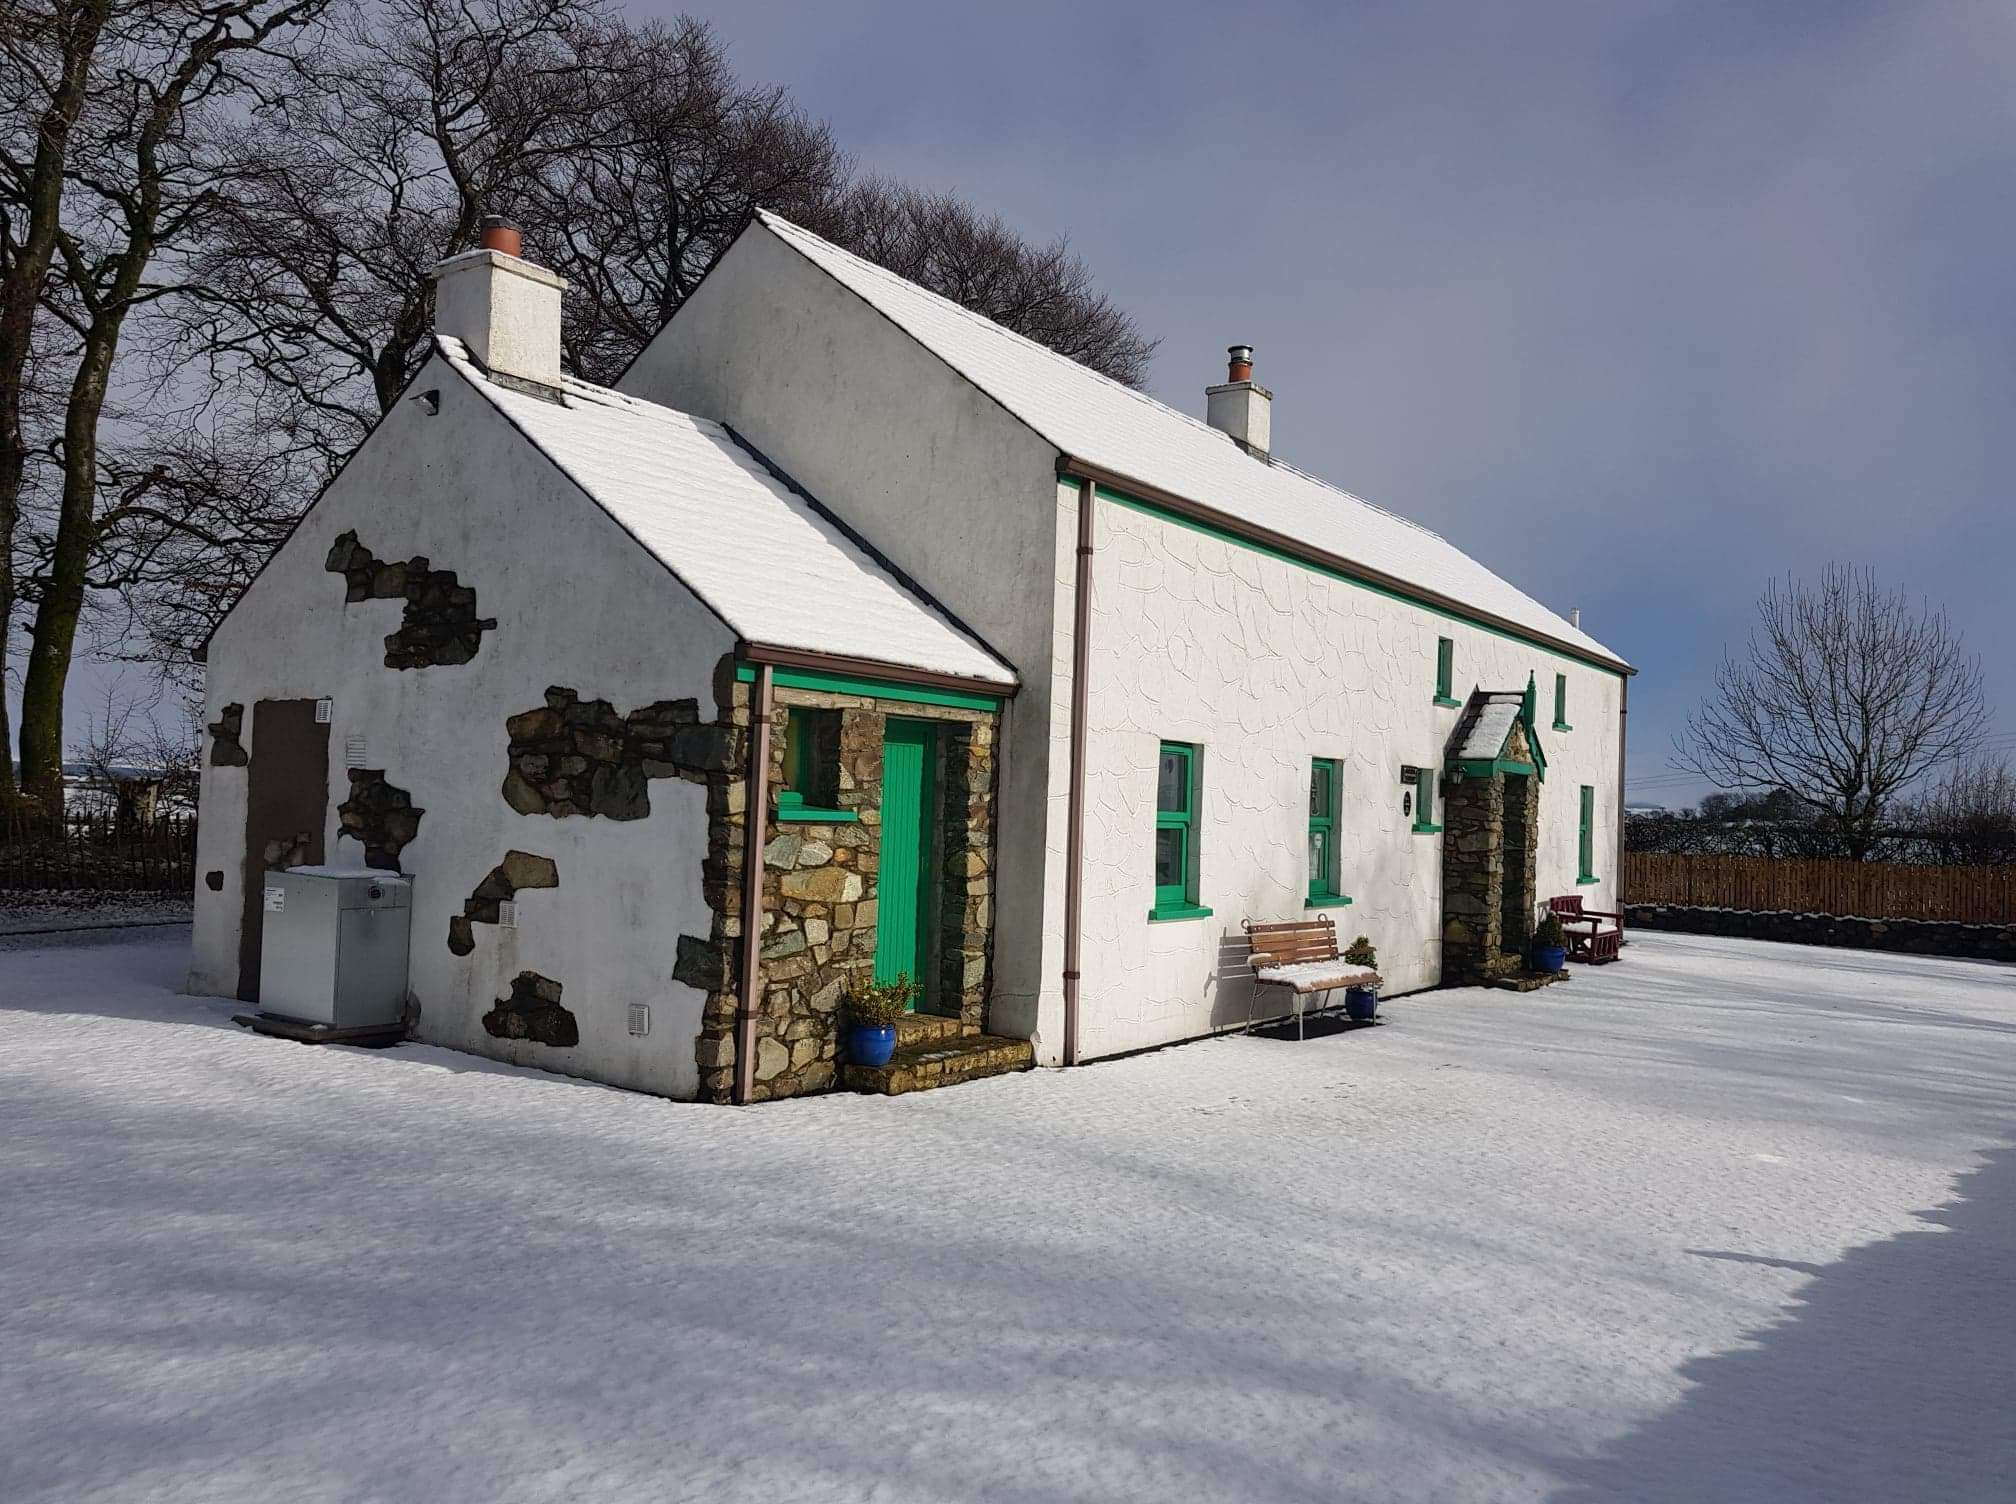 Drumaneir cottage in the winter